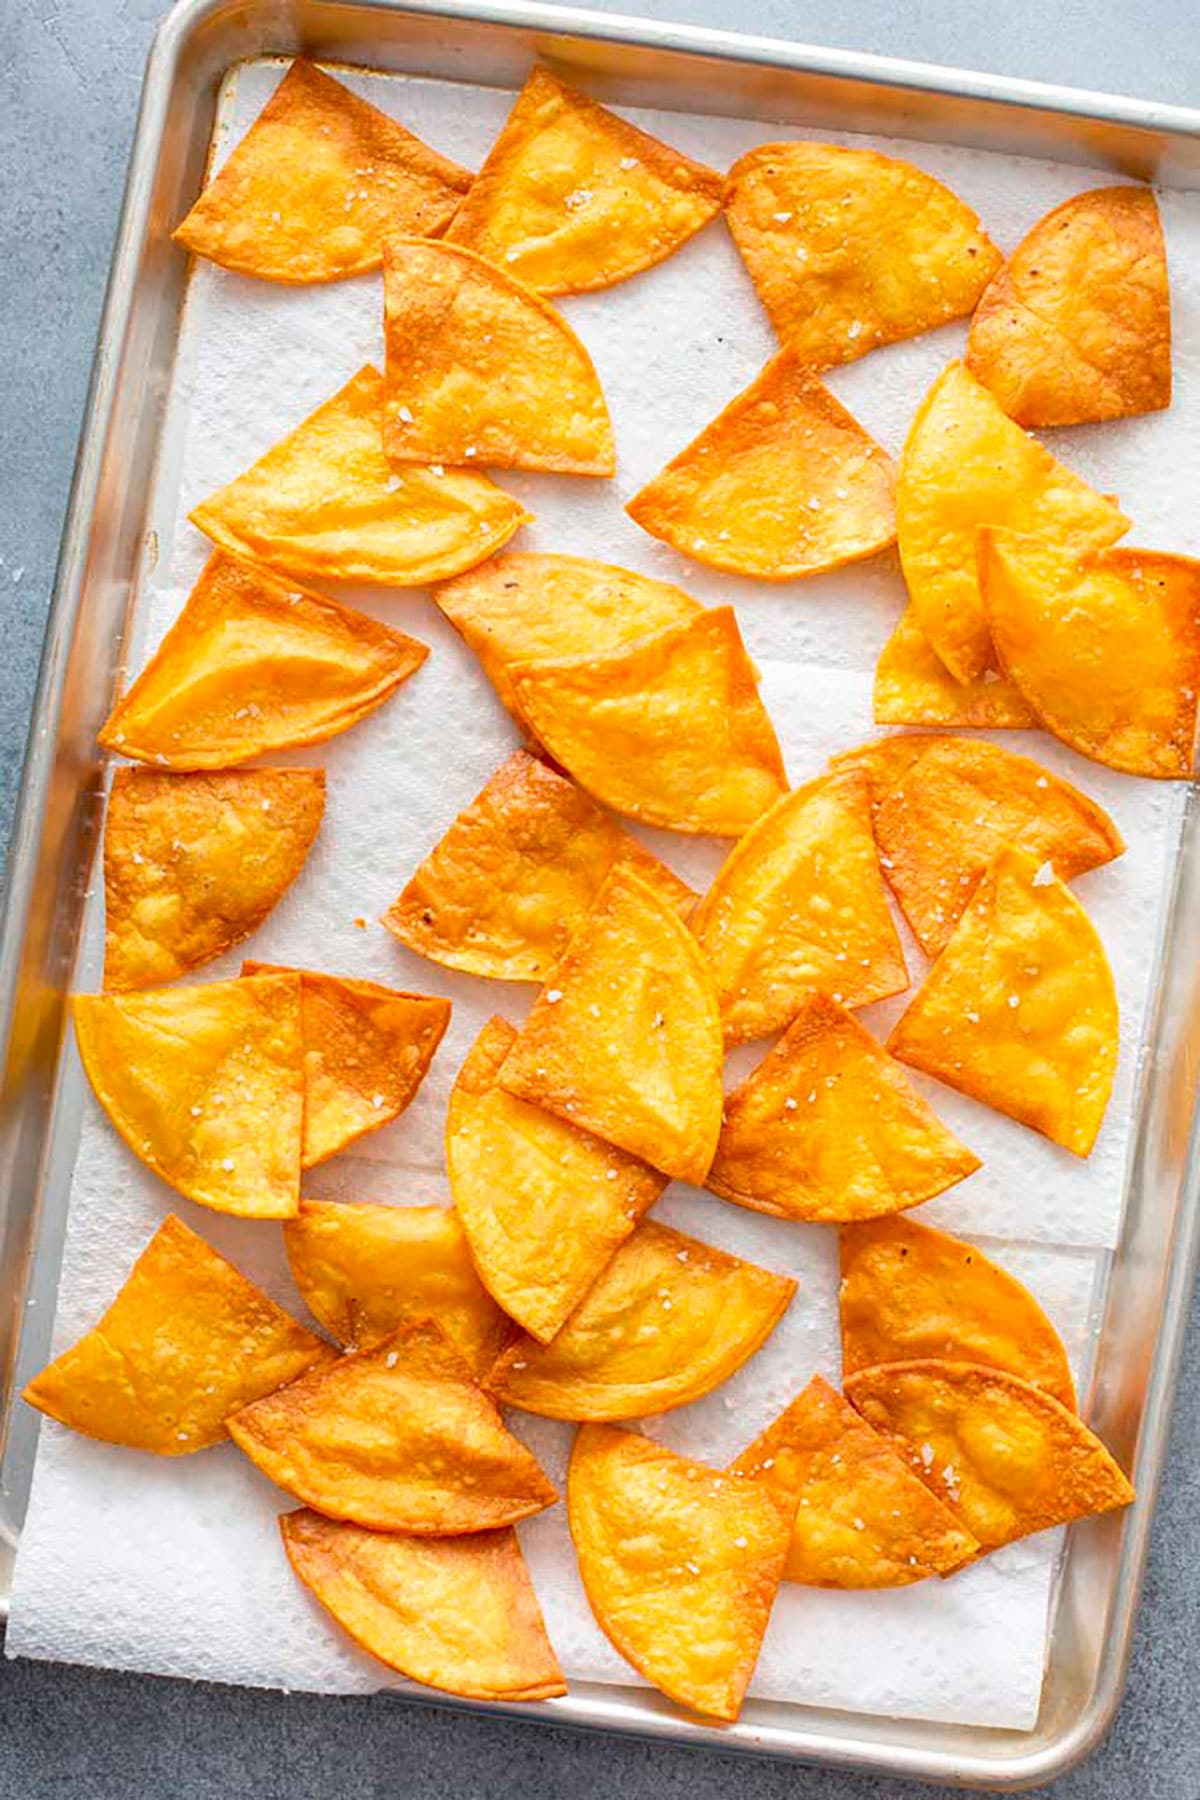 Paper towel lined sheet pan with freshly cooked tortilla chips